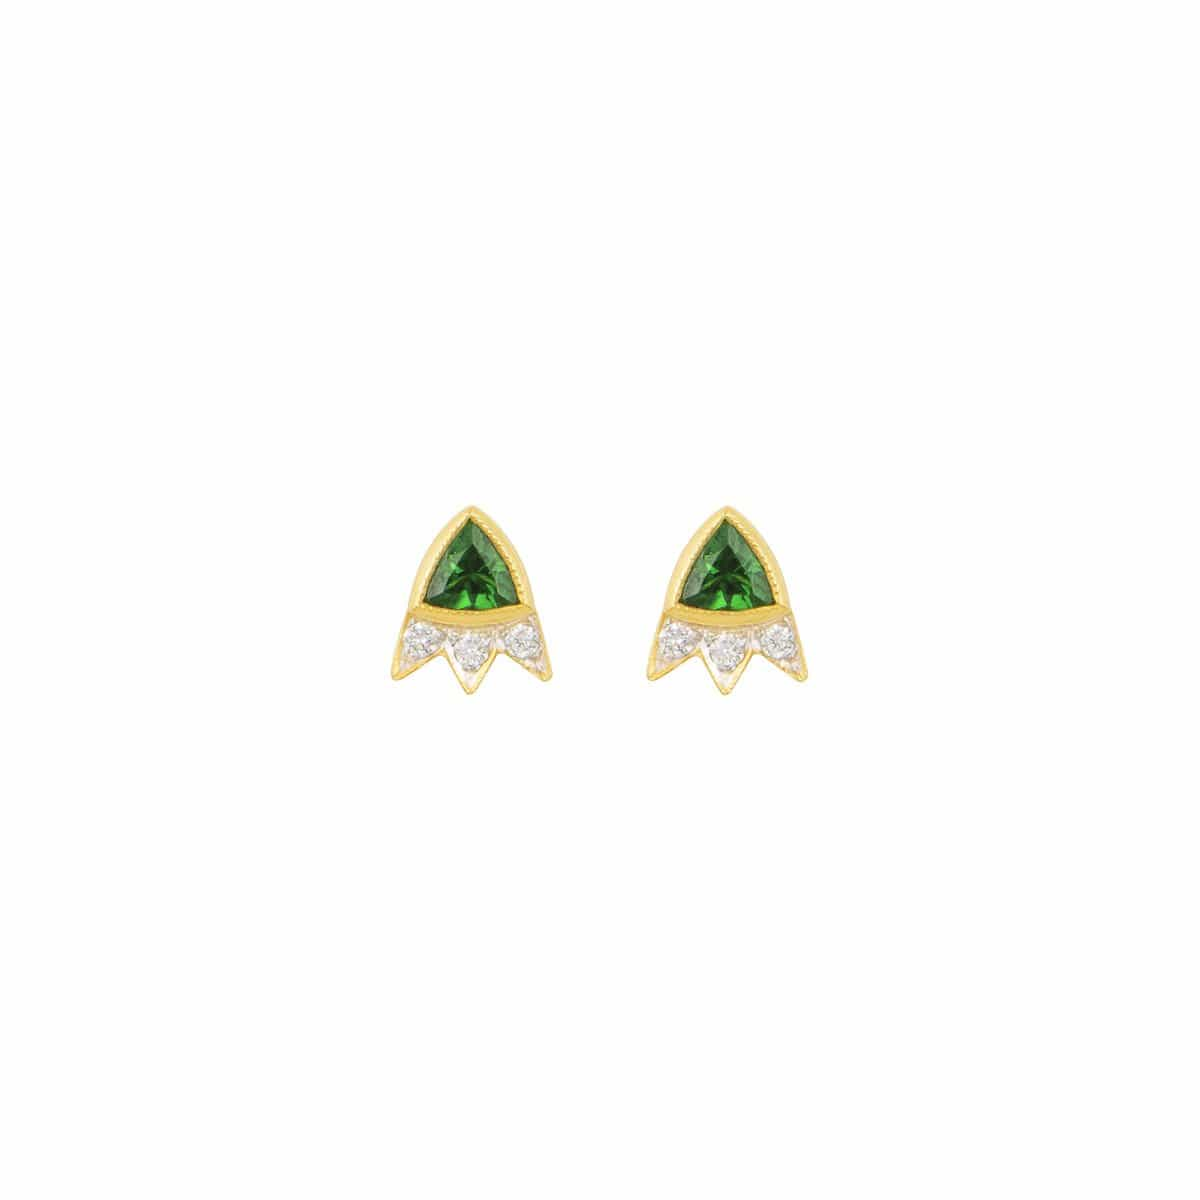 Green Tsavorite Trillion Cut Starburst Diamond Earrings